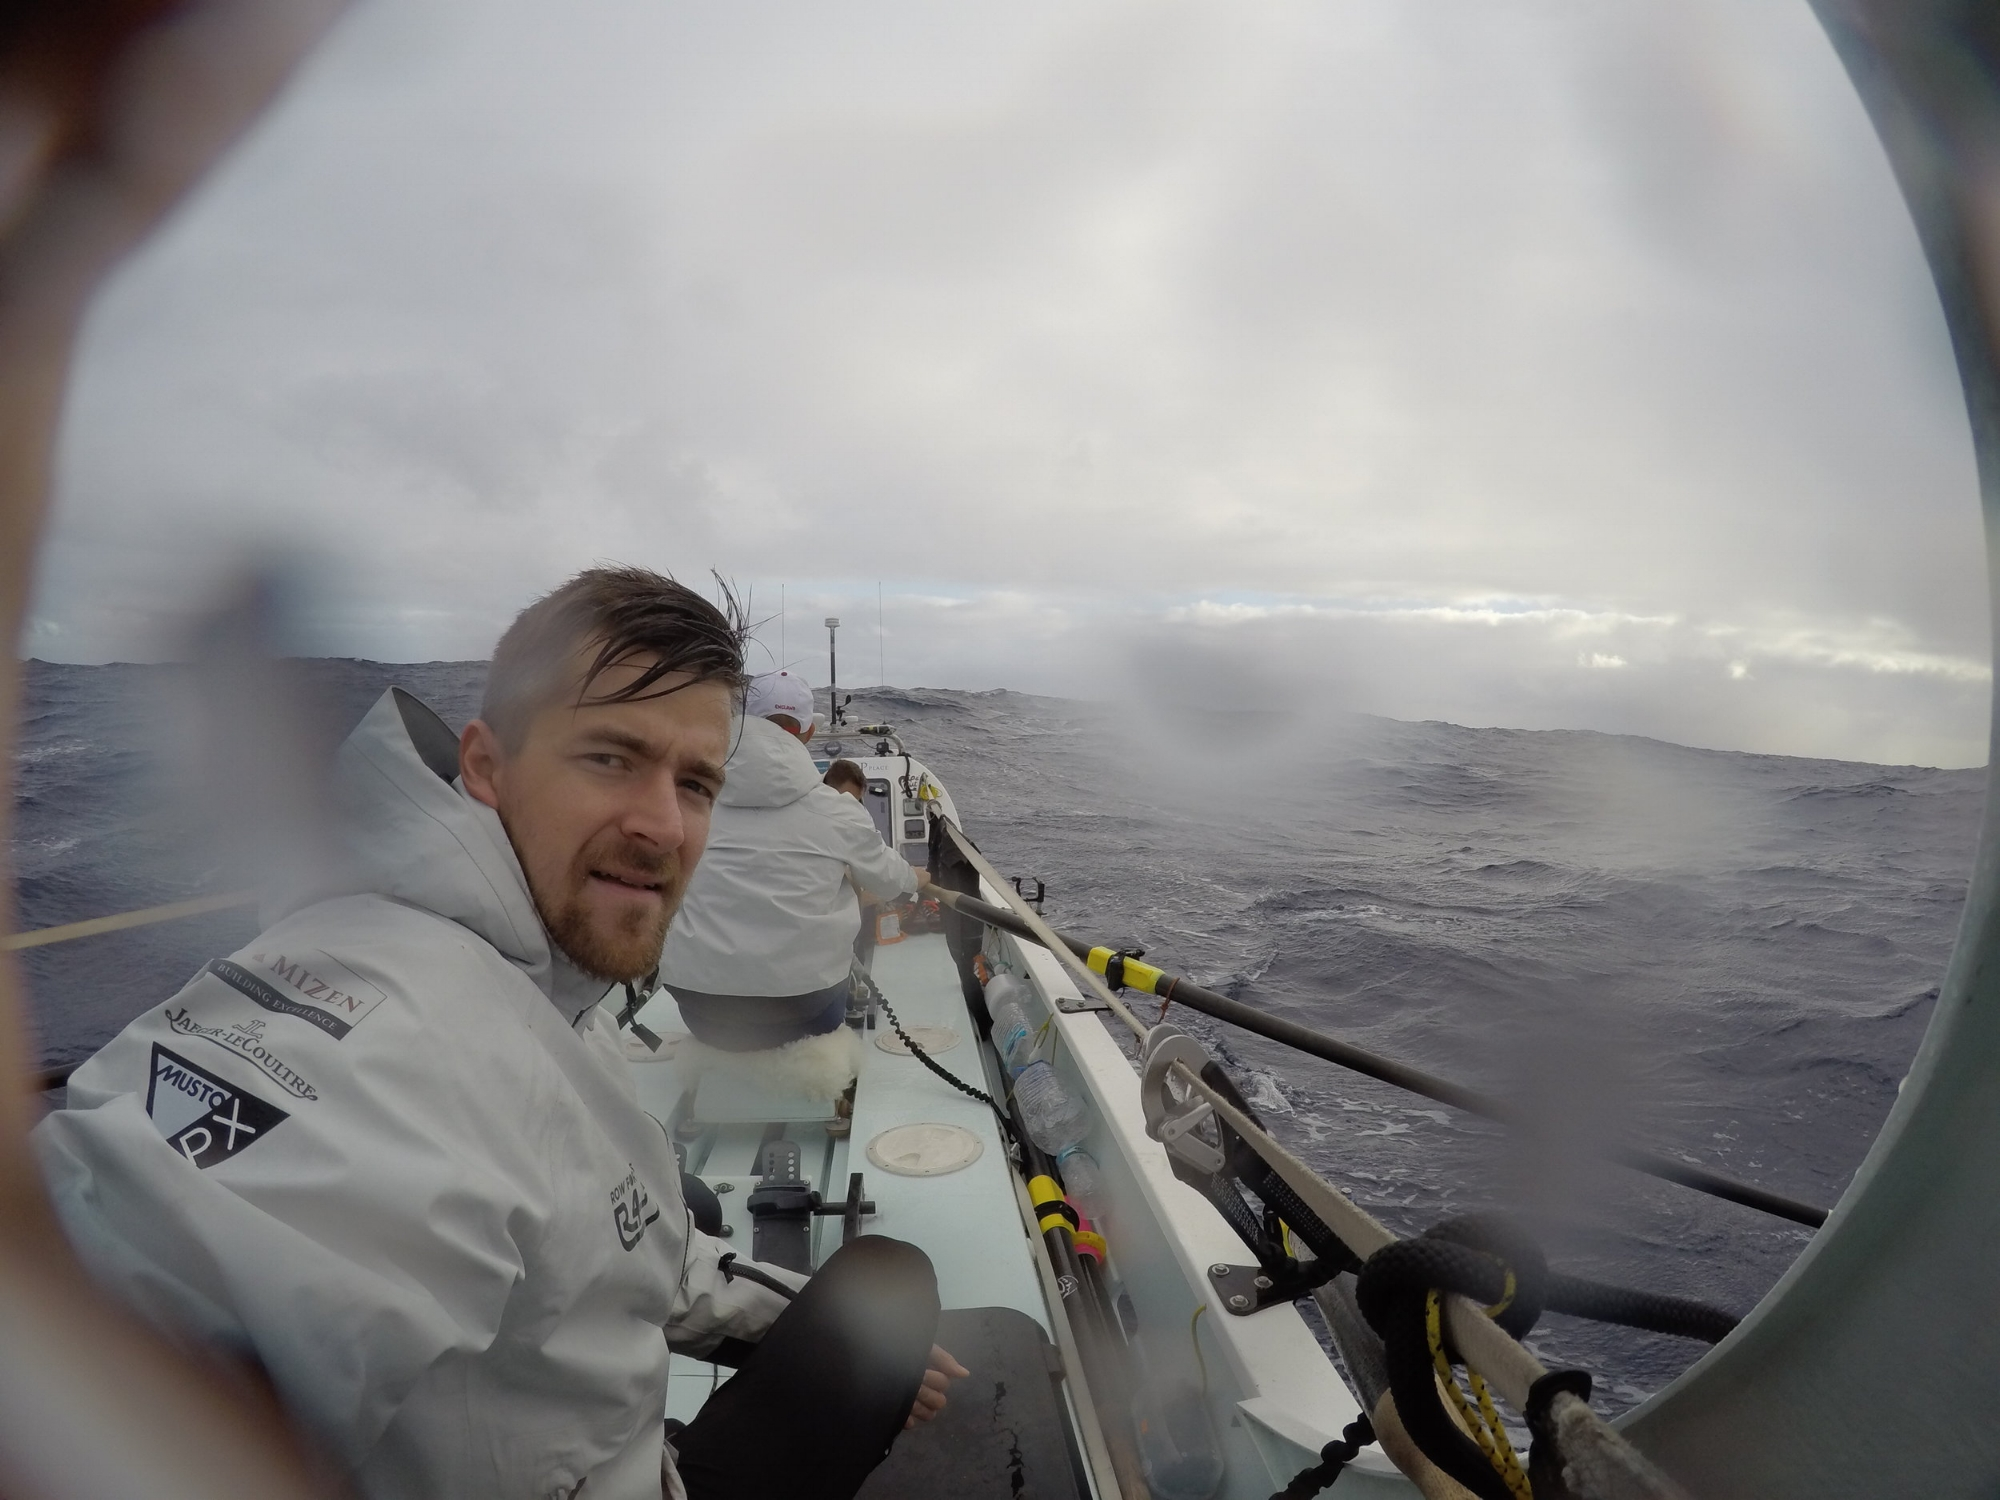 Rowing through the rain out on the Atlantic